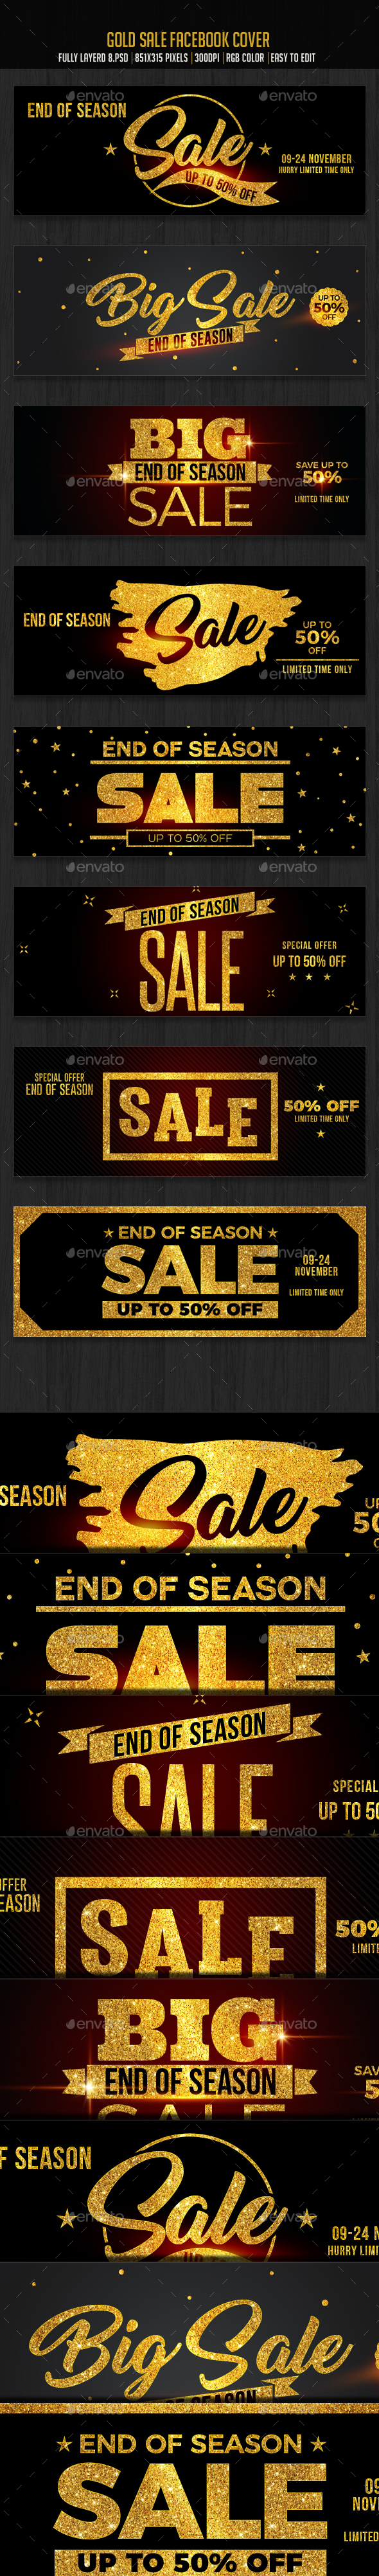 Gold Sale Facebook Cover